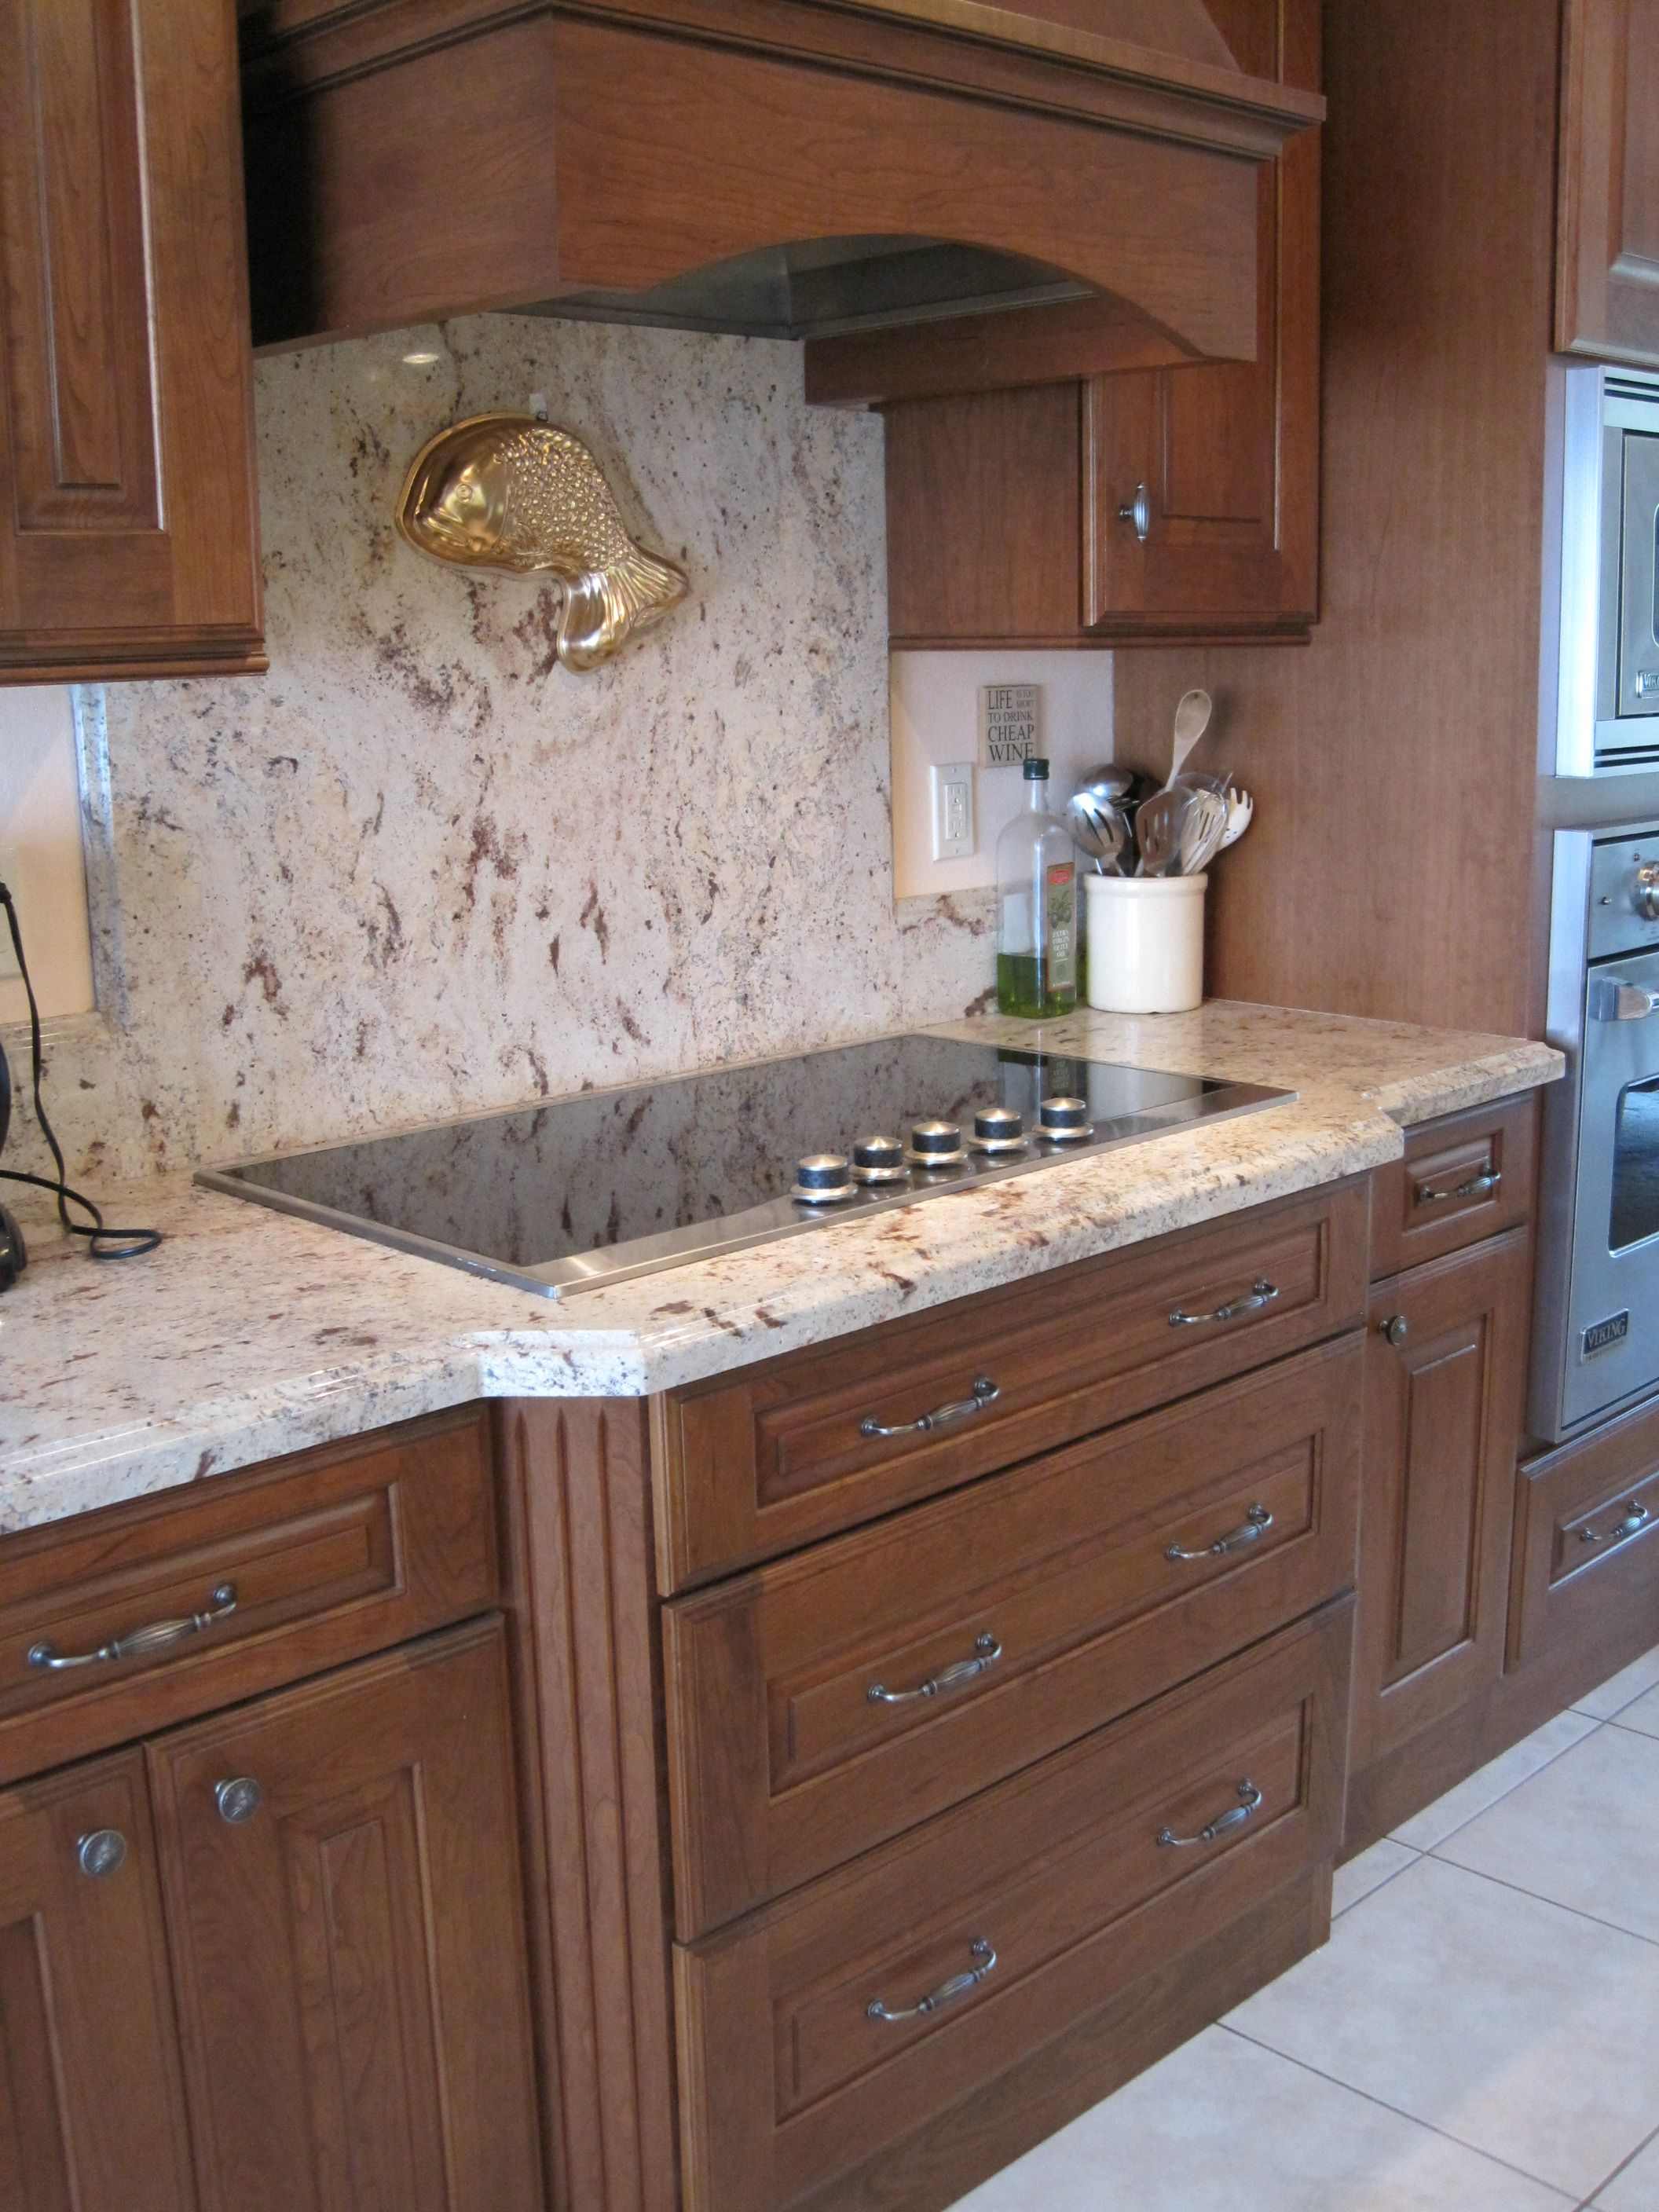 - Granite Backsplash, Full Height, Behind The Cooktop. Granite